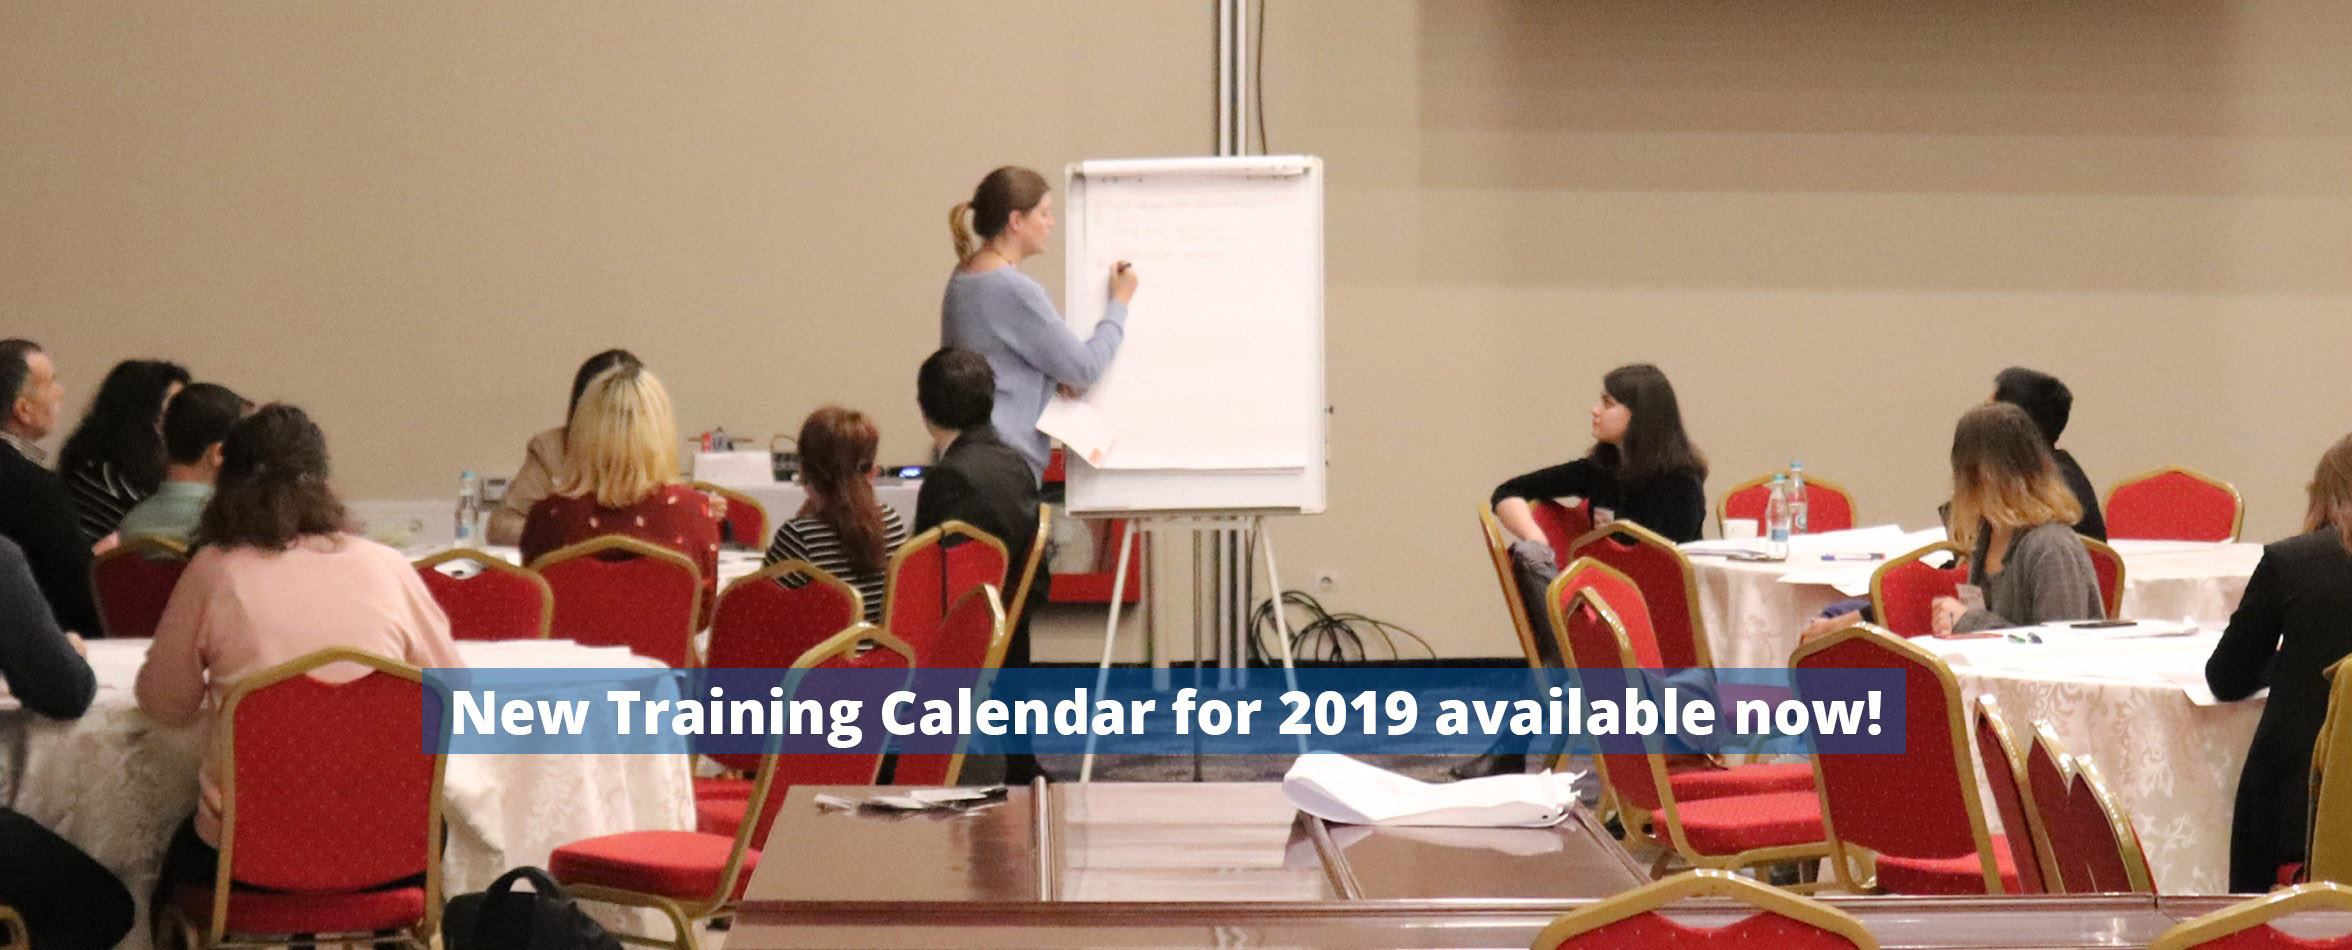 slide-0-IPDTC-Training-Calendar-2019